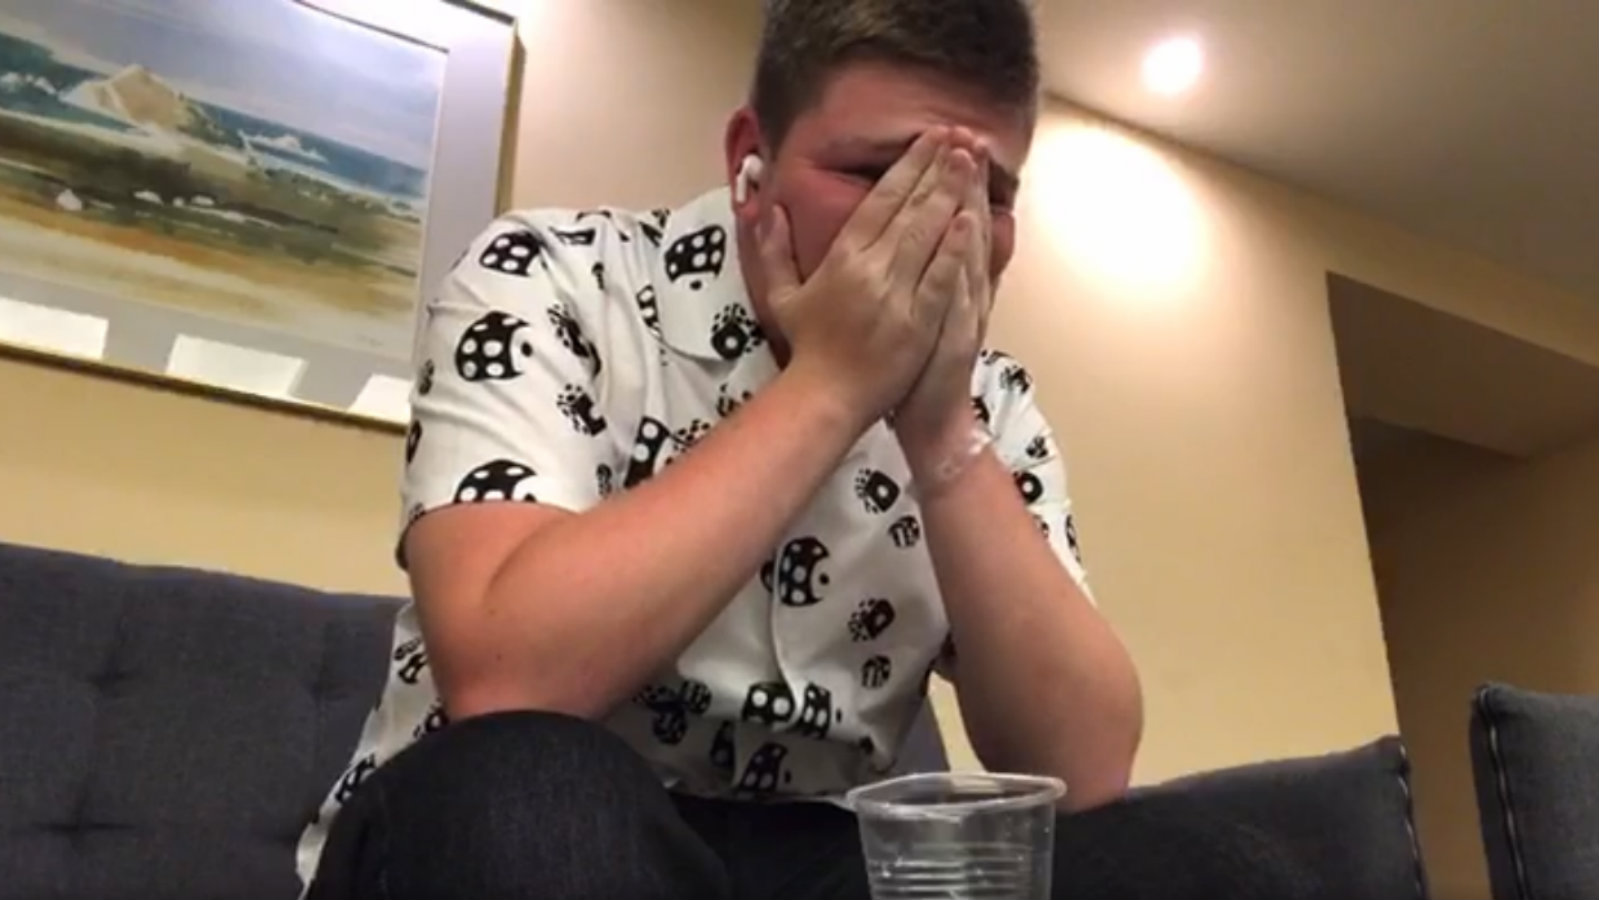 AverageHarrry cries after being laughed at